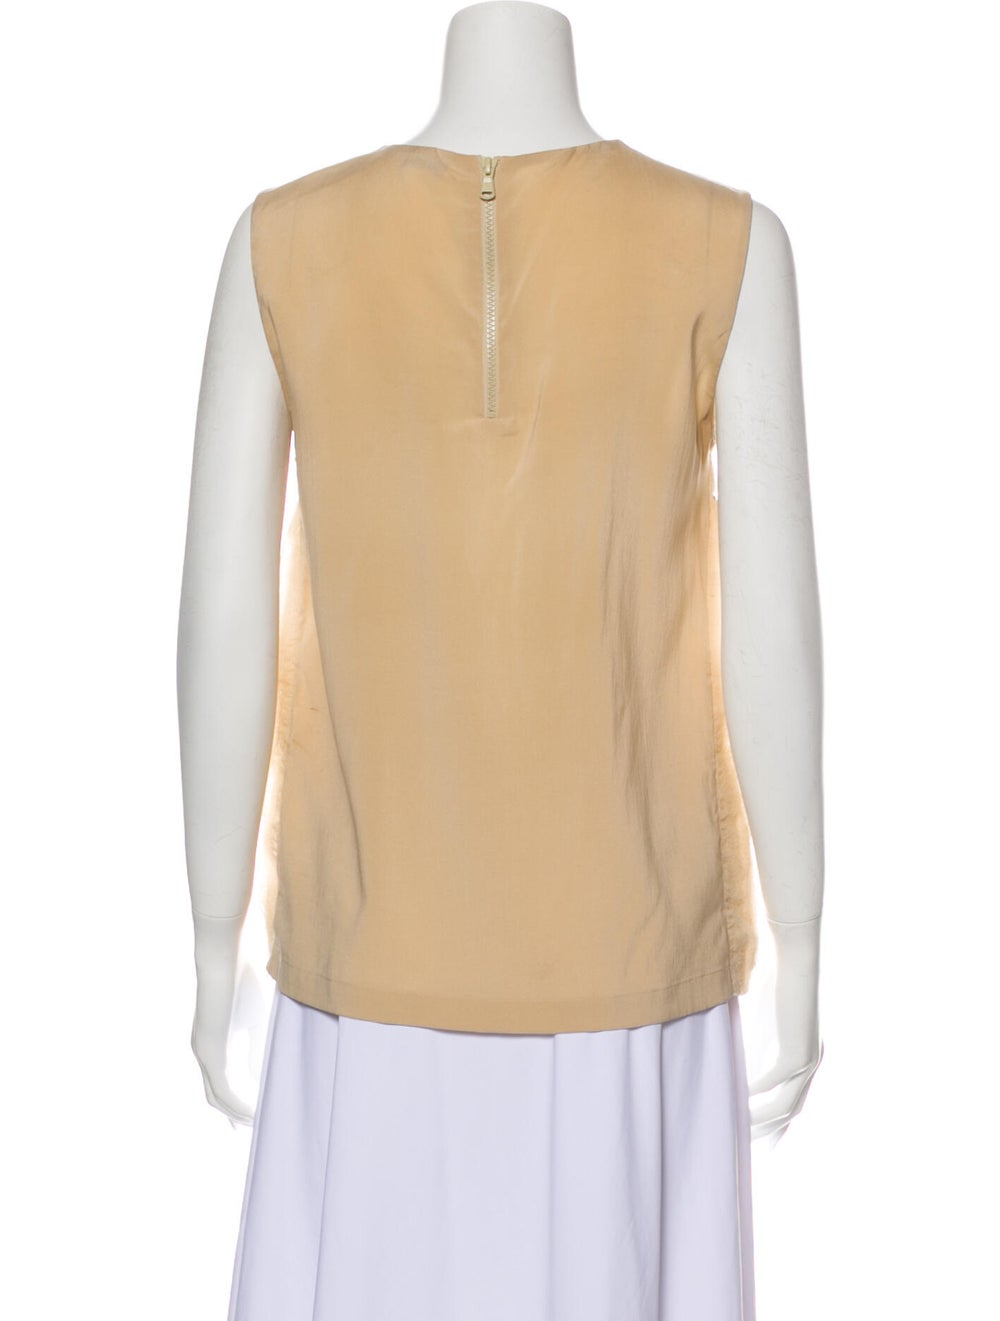 Brunello Cucinelli Silk Crew Neck Top - image 3